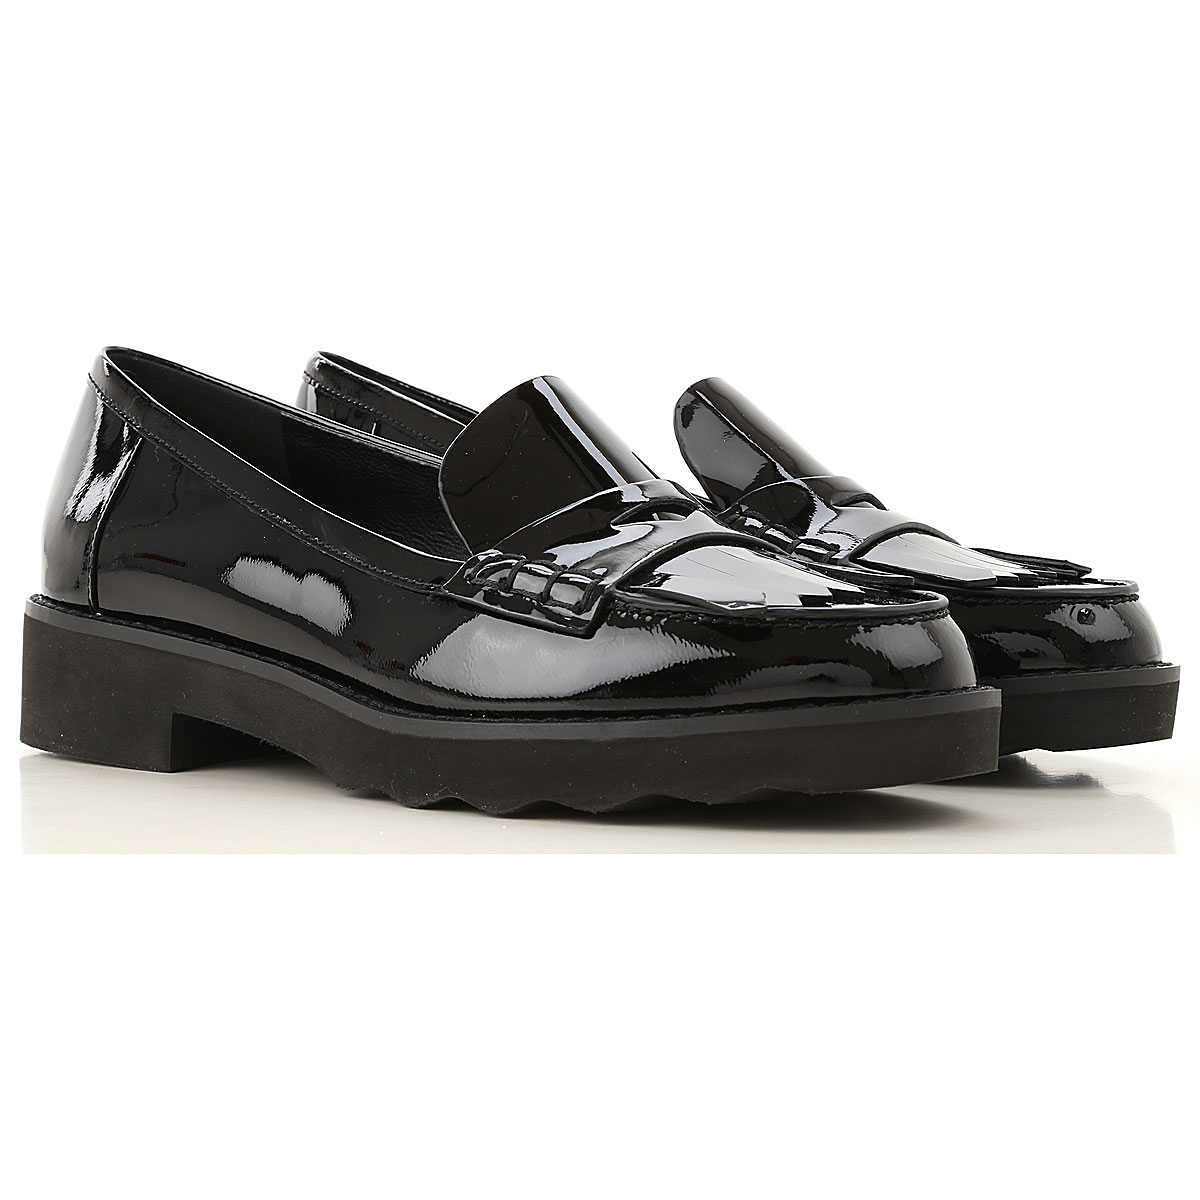 Michael Kors Loafers for Women Black - GOOFASH